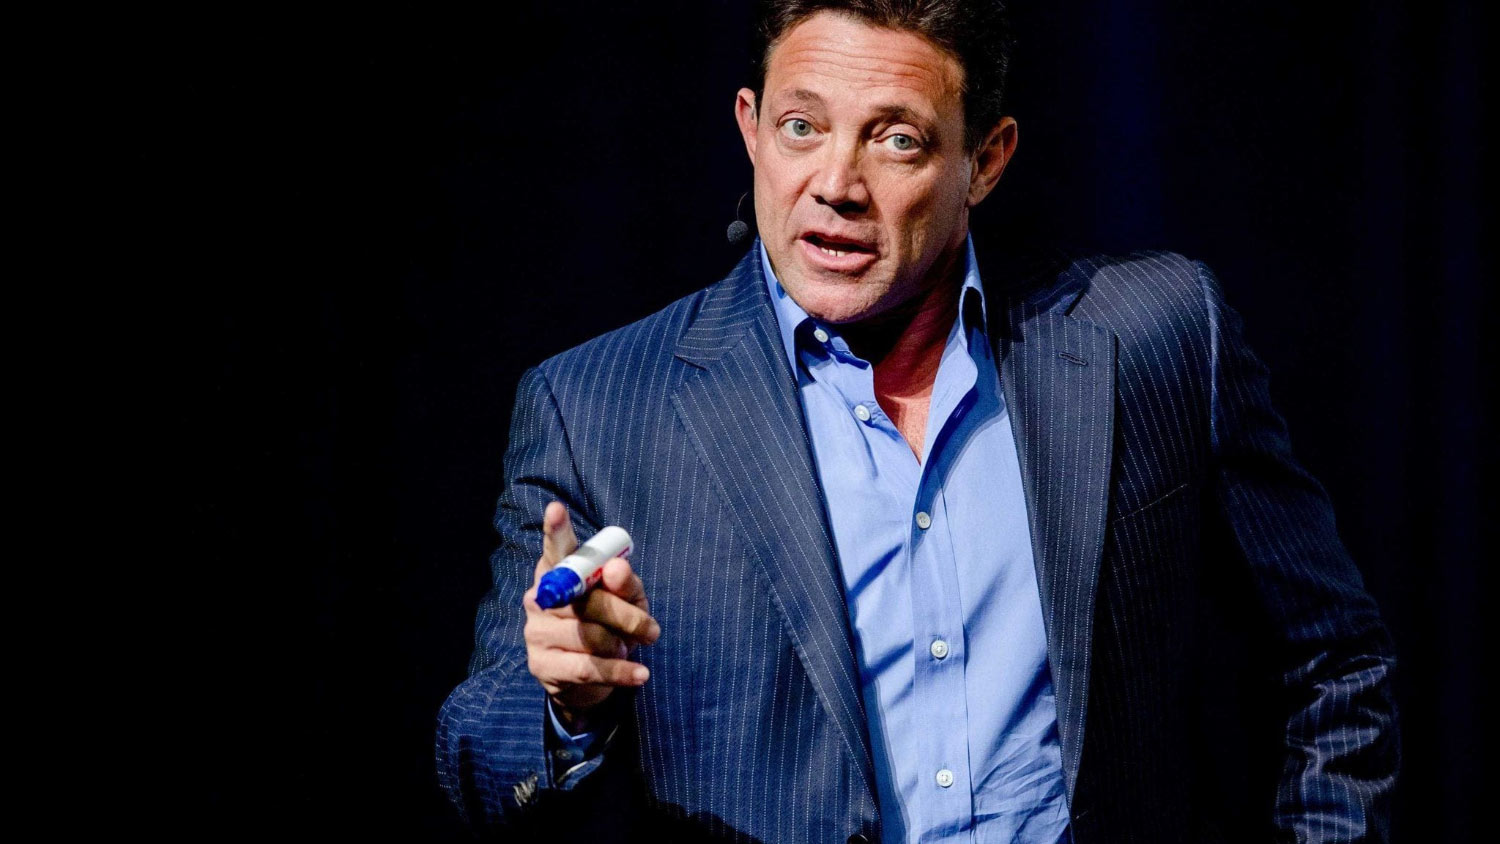 Ironically, The Wolf Of Wall Street Calls For Regulation